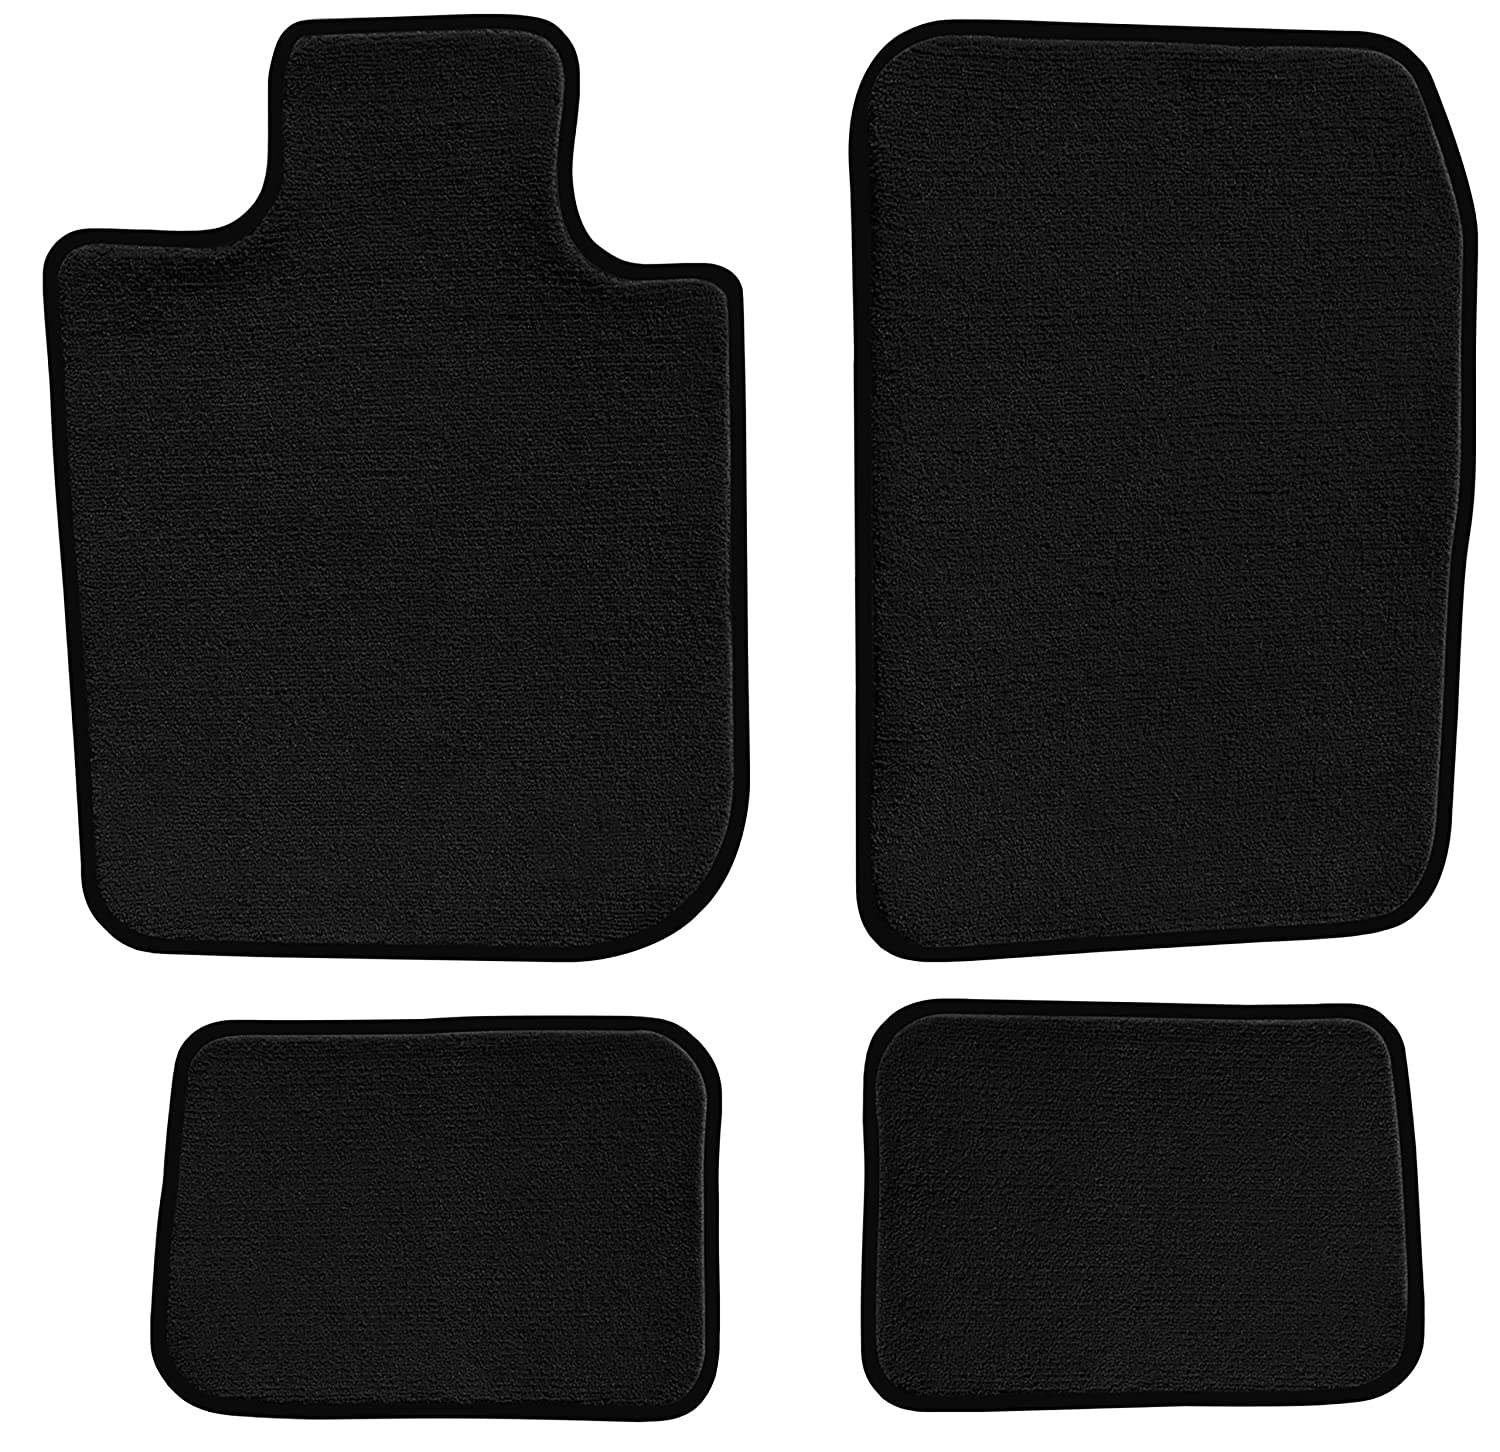 1994 1993 GGBAILEY D4238A-S1A-BK-LP Custom Fit Automotive Carpet Floor Mats for 1992 Passenger /& Rear 1995 Toyota Paseo Coupe Black Loop Driver